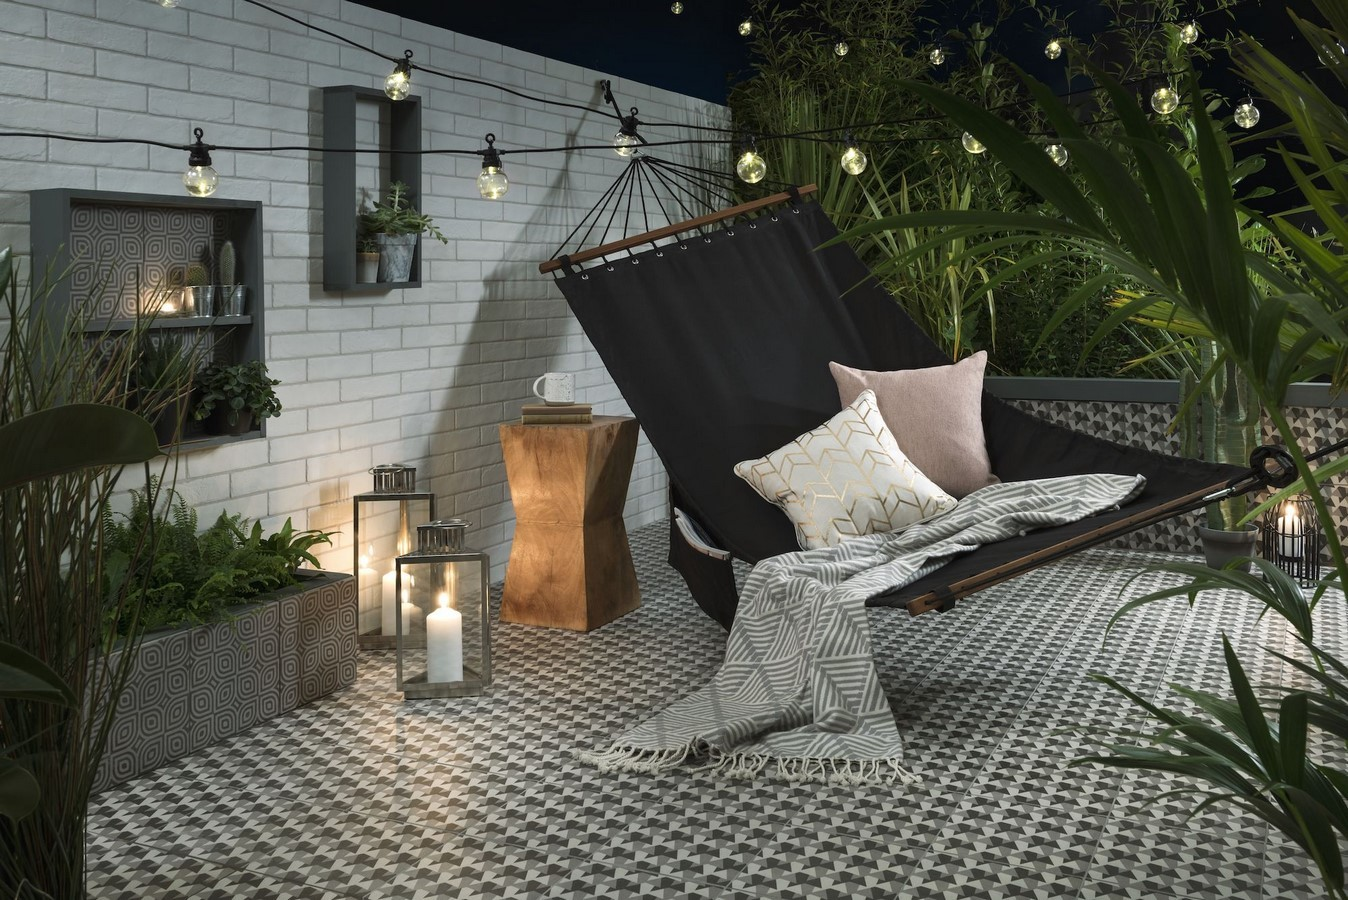 50 Ideas and Tips for Landscaping - Sheet34